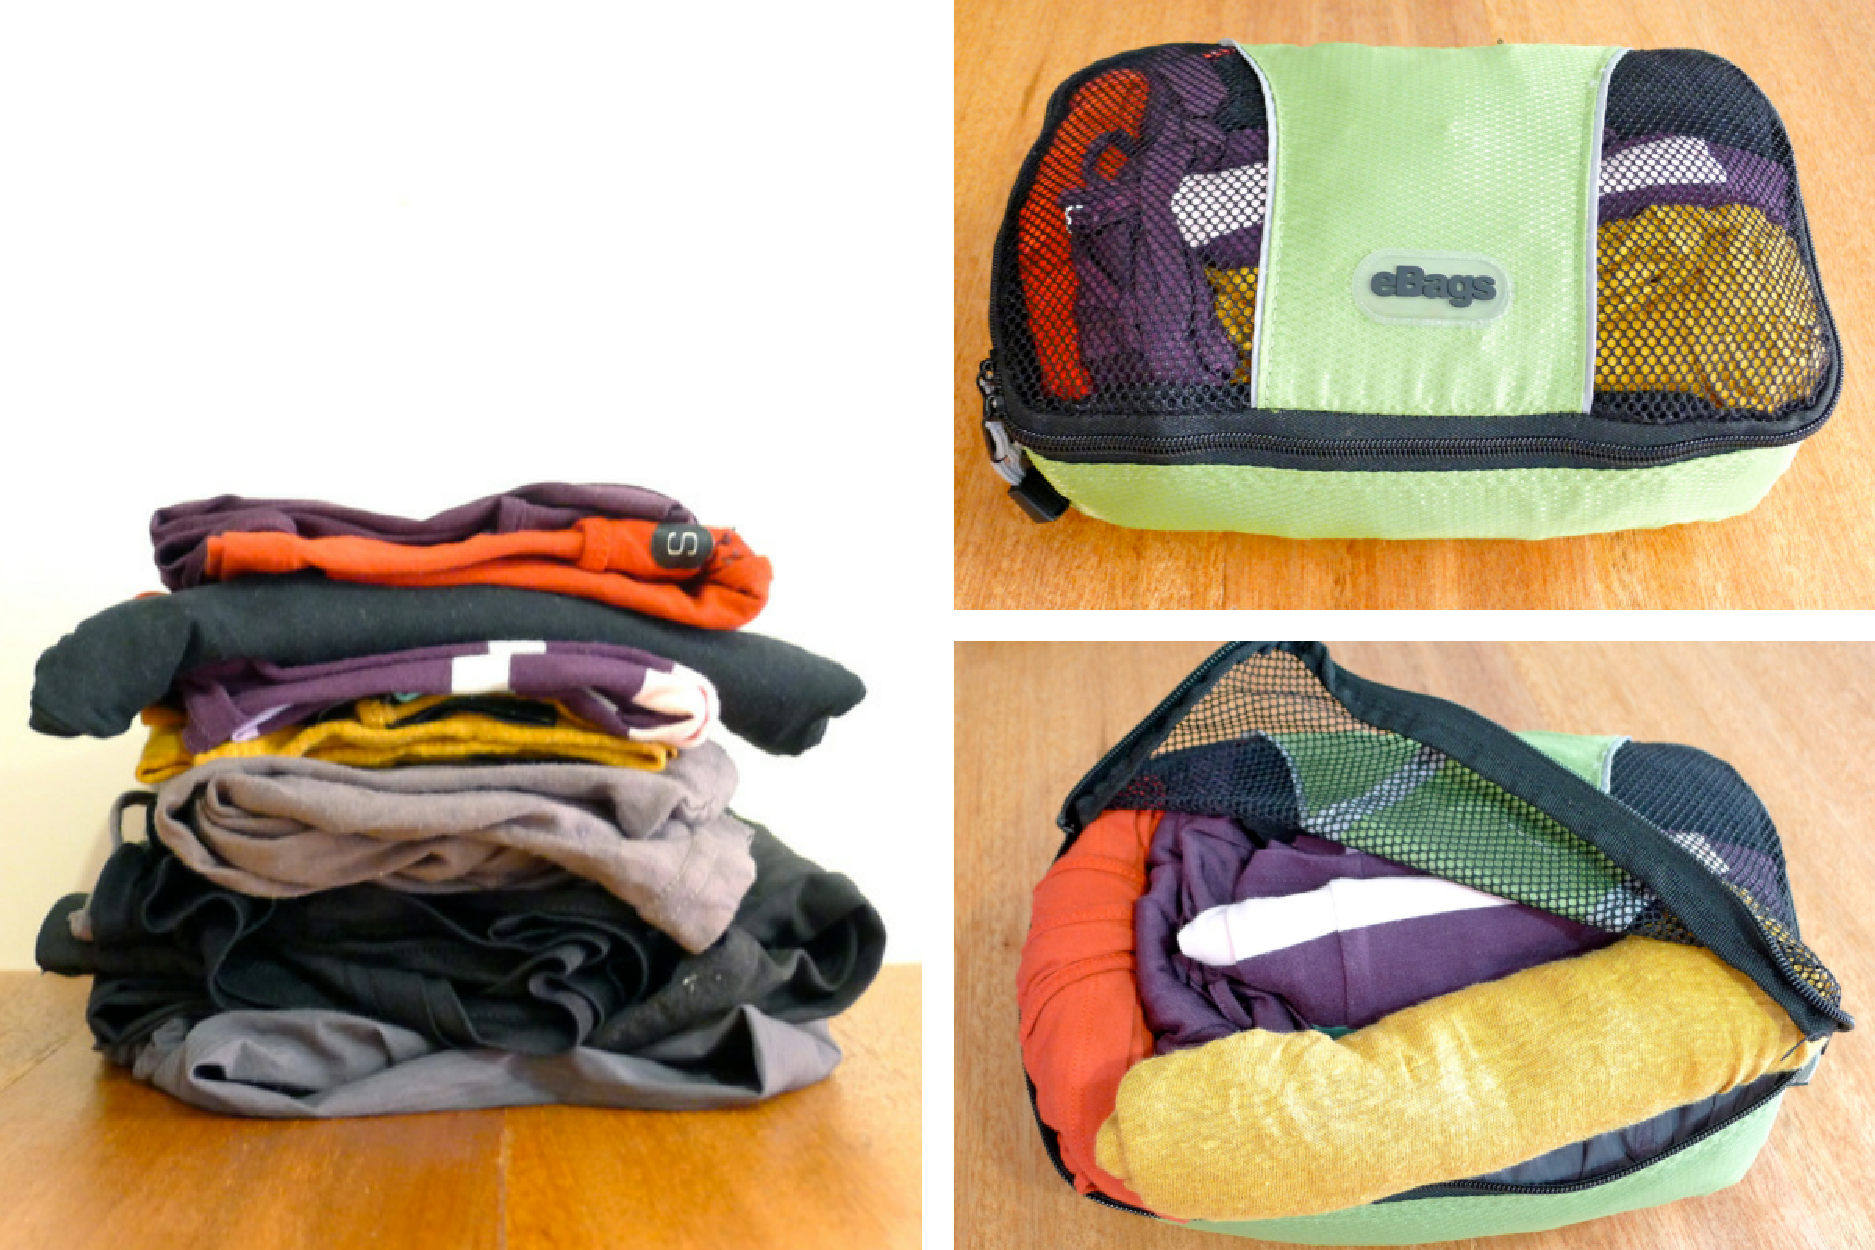 Packing cubes compress and organize.